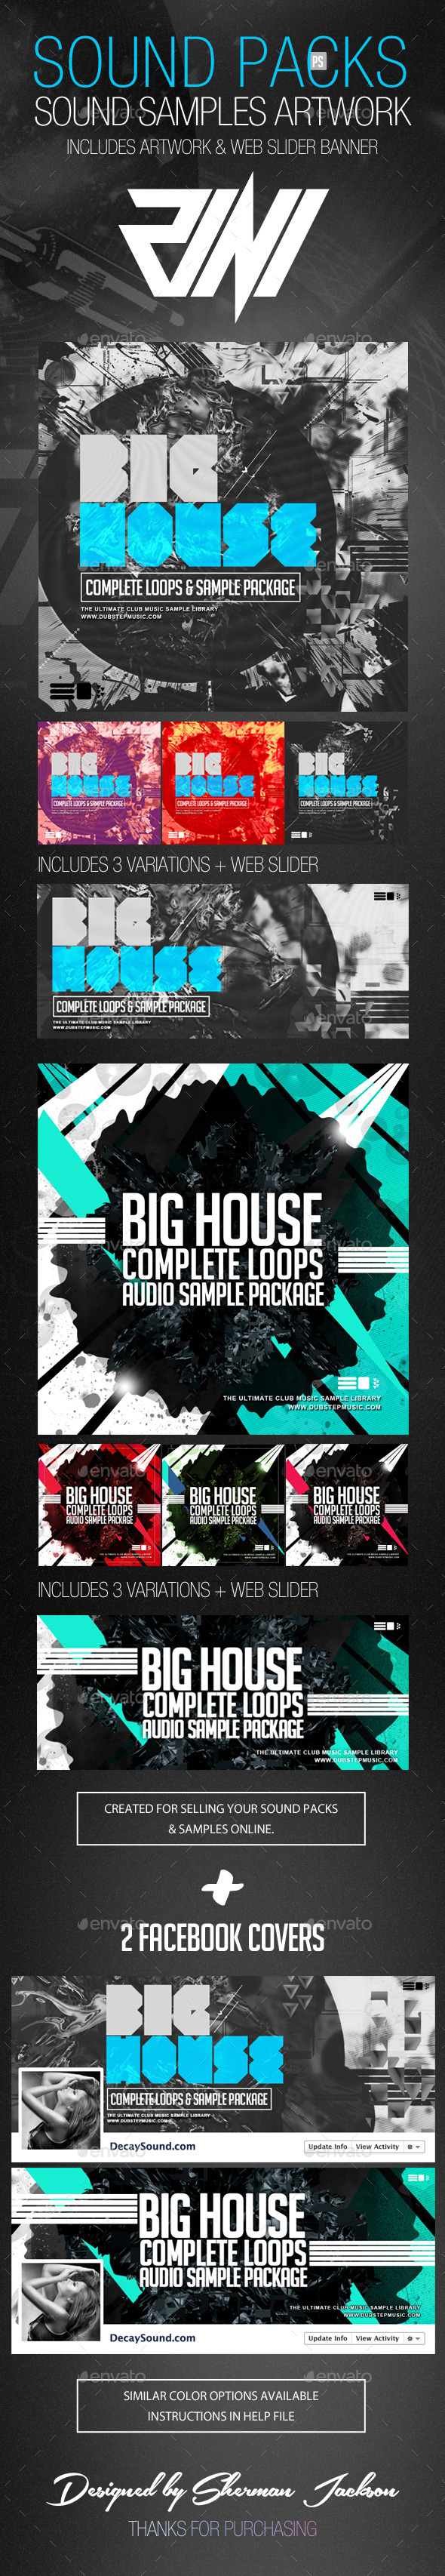 GraphicRiver Sound Packs & Sound Samples Artwork 8792633